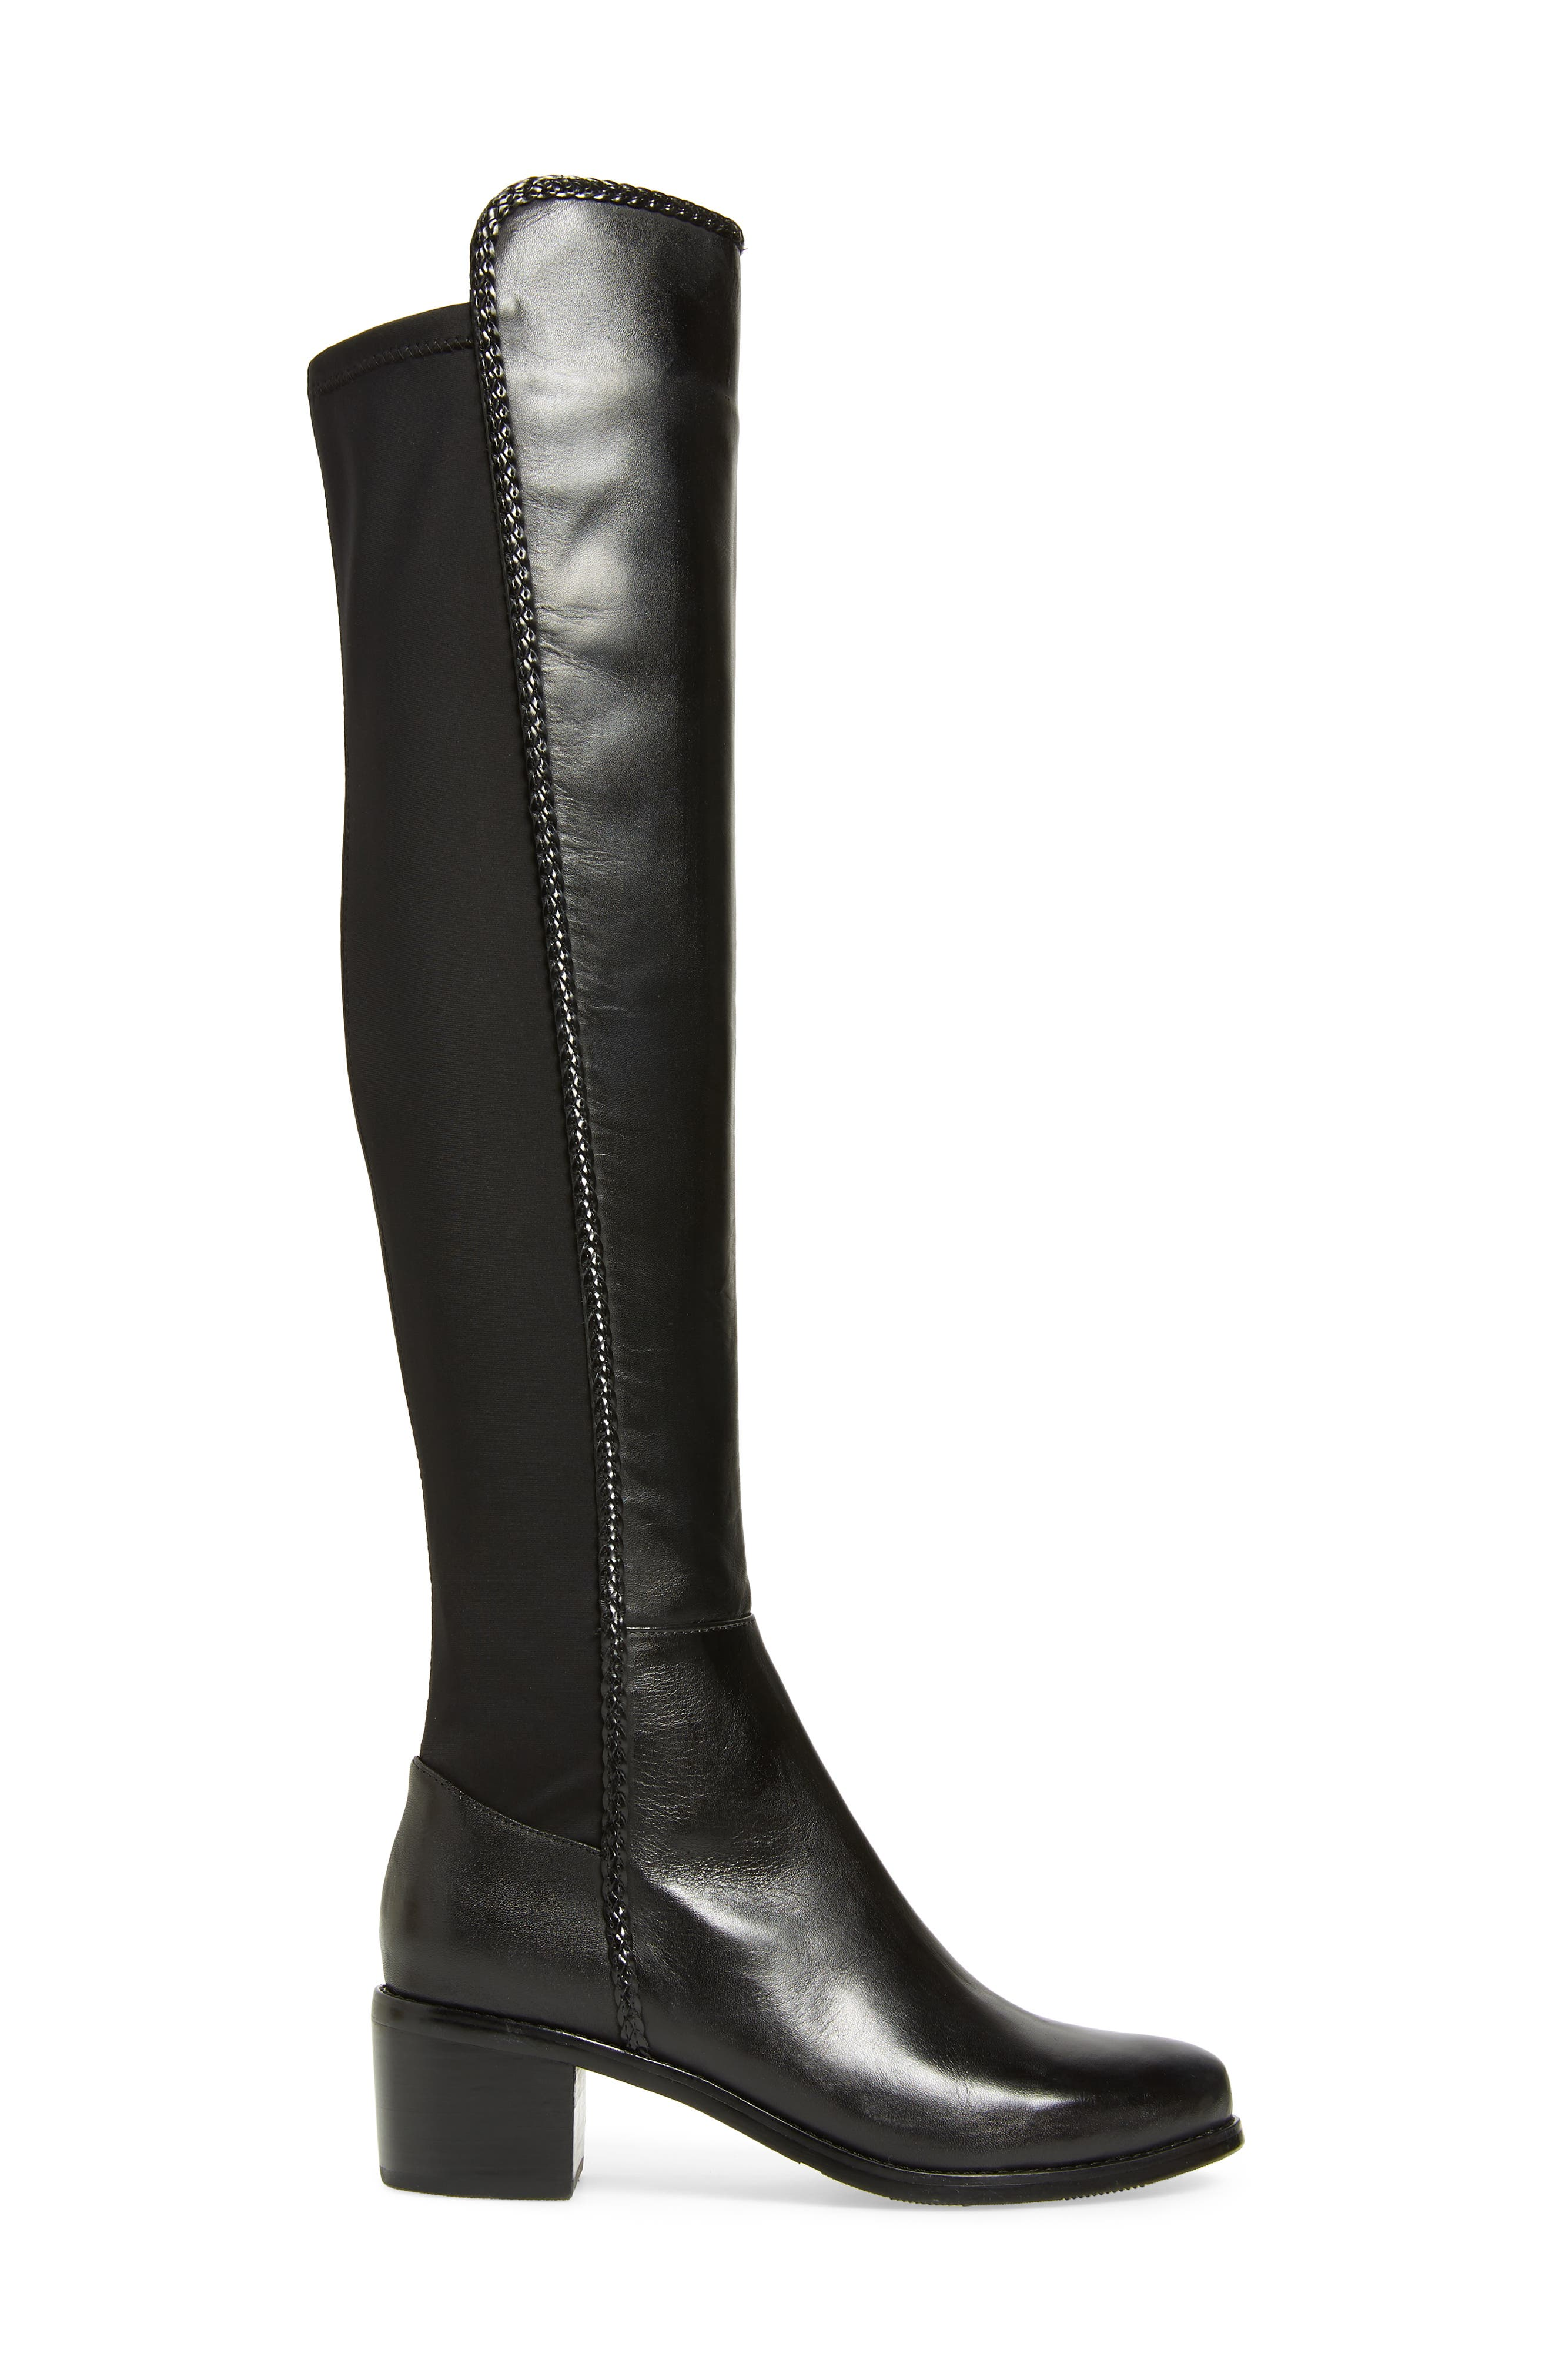 AQUADIVA, Florence Waterproof Over the Knee Boot, Alternate thumbnail 3, color, BLACK LEATHER